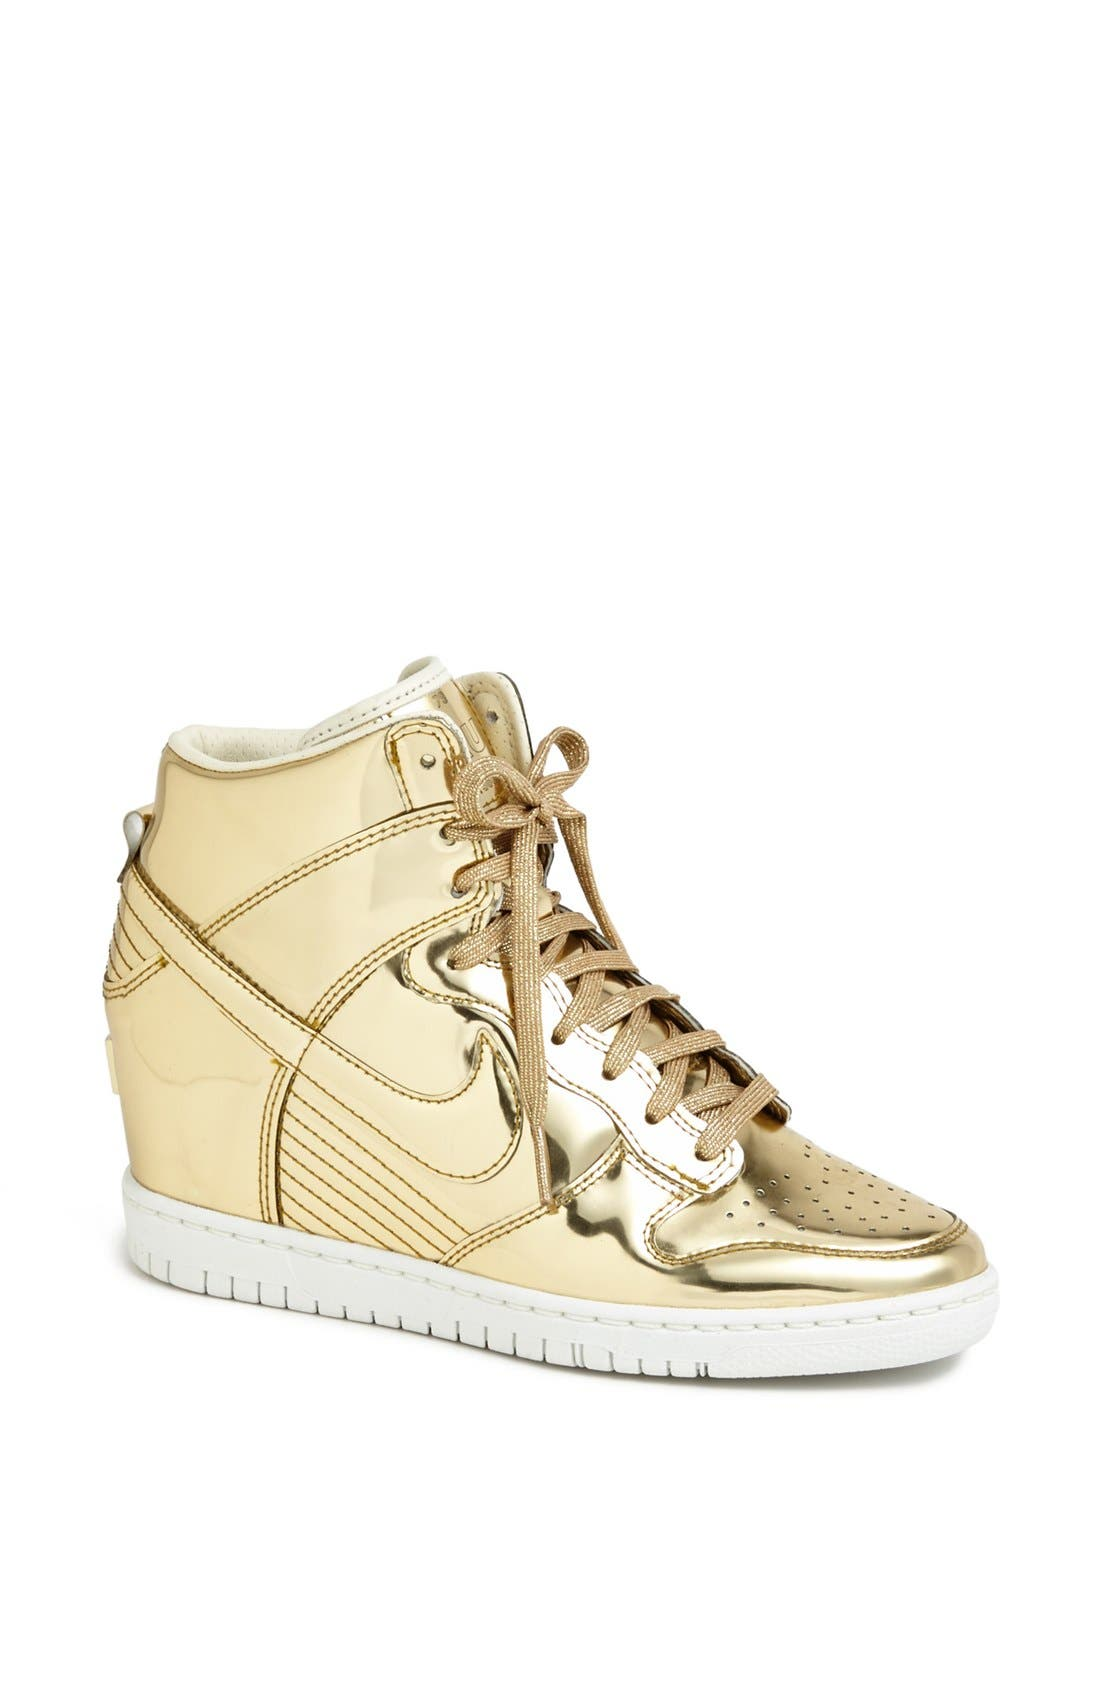 Main Image - Nike 'Dunk Sky Hi' Hidden Wedge Sneaker (Women)